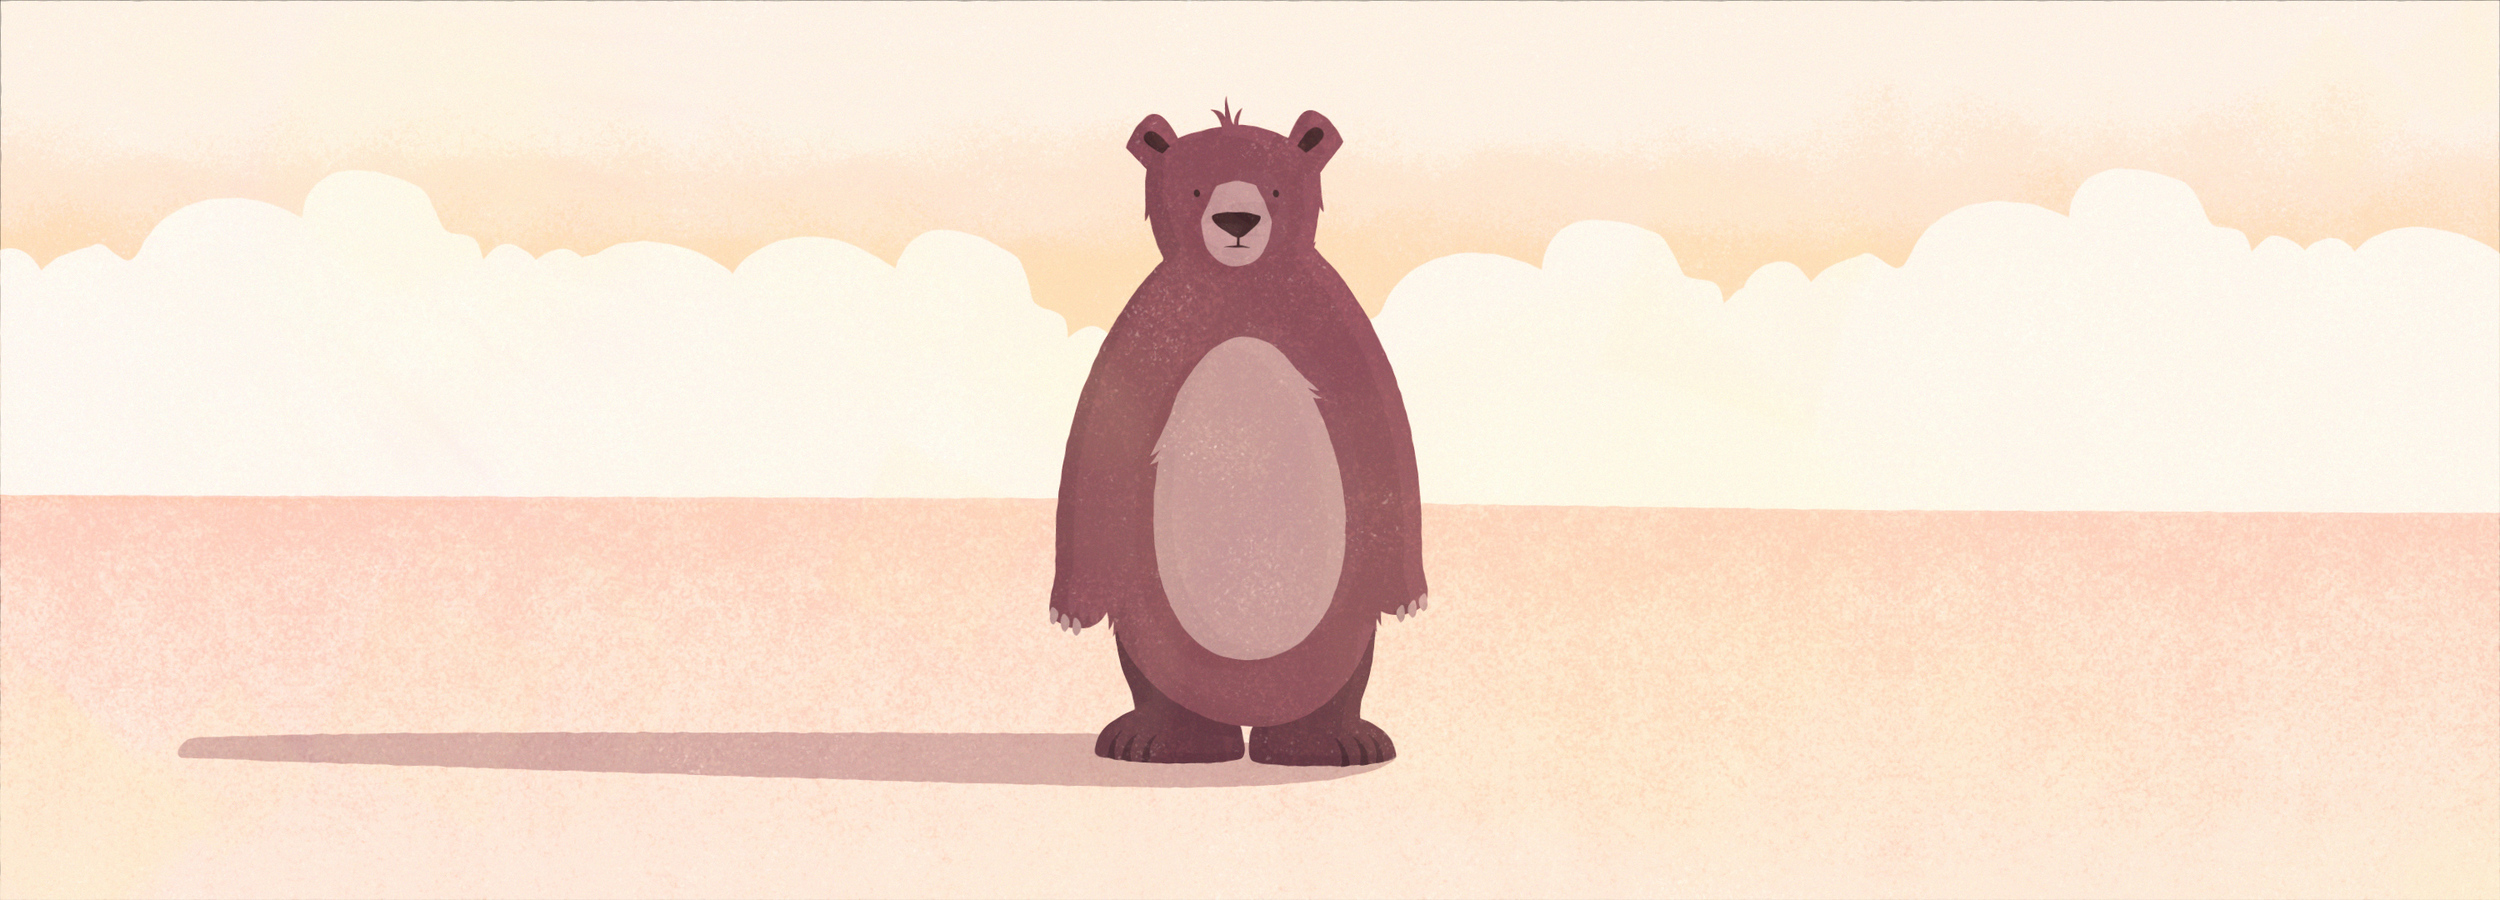 Crofters Organic Unused animation bear 01 by Dina Makanji